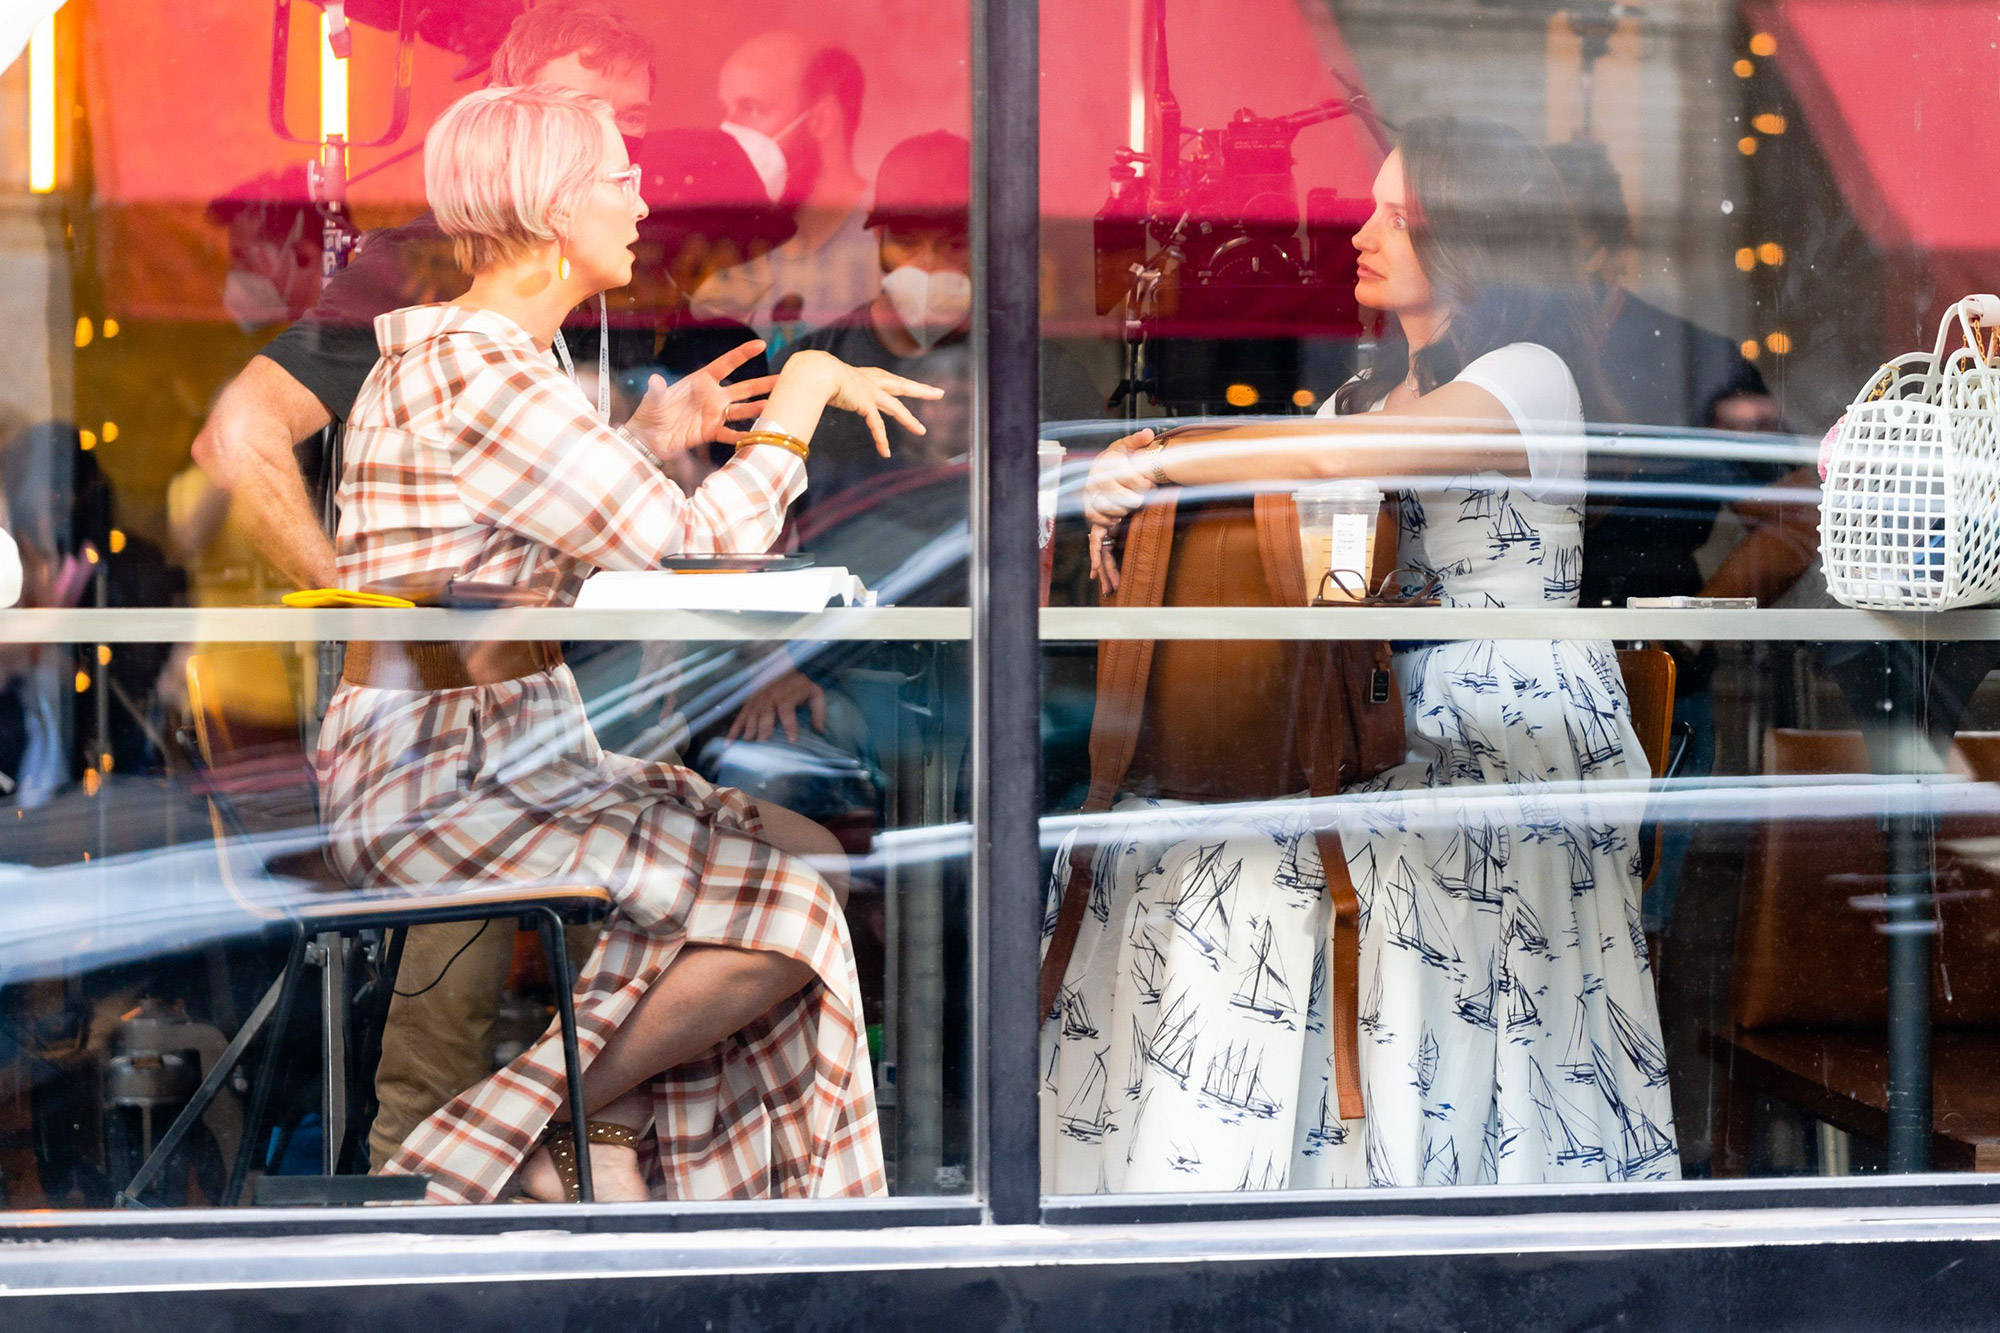 """Cynthia Nixon (L) and Kristen Davis are seen filming """"And Just Like That..."""" the follow up series to """"Sex and the City"""" in the East Village on July 19, 2021 in New York City"""